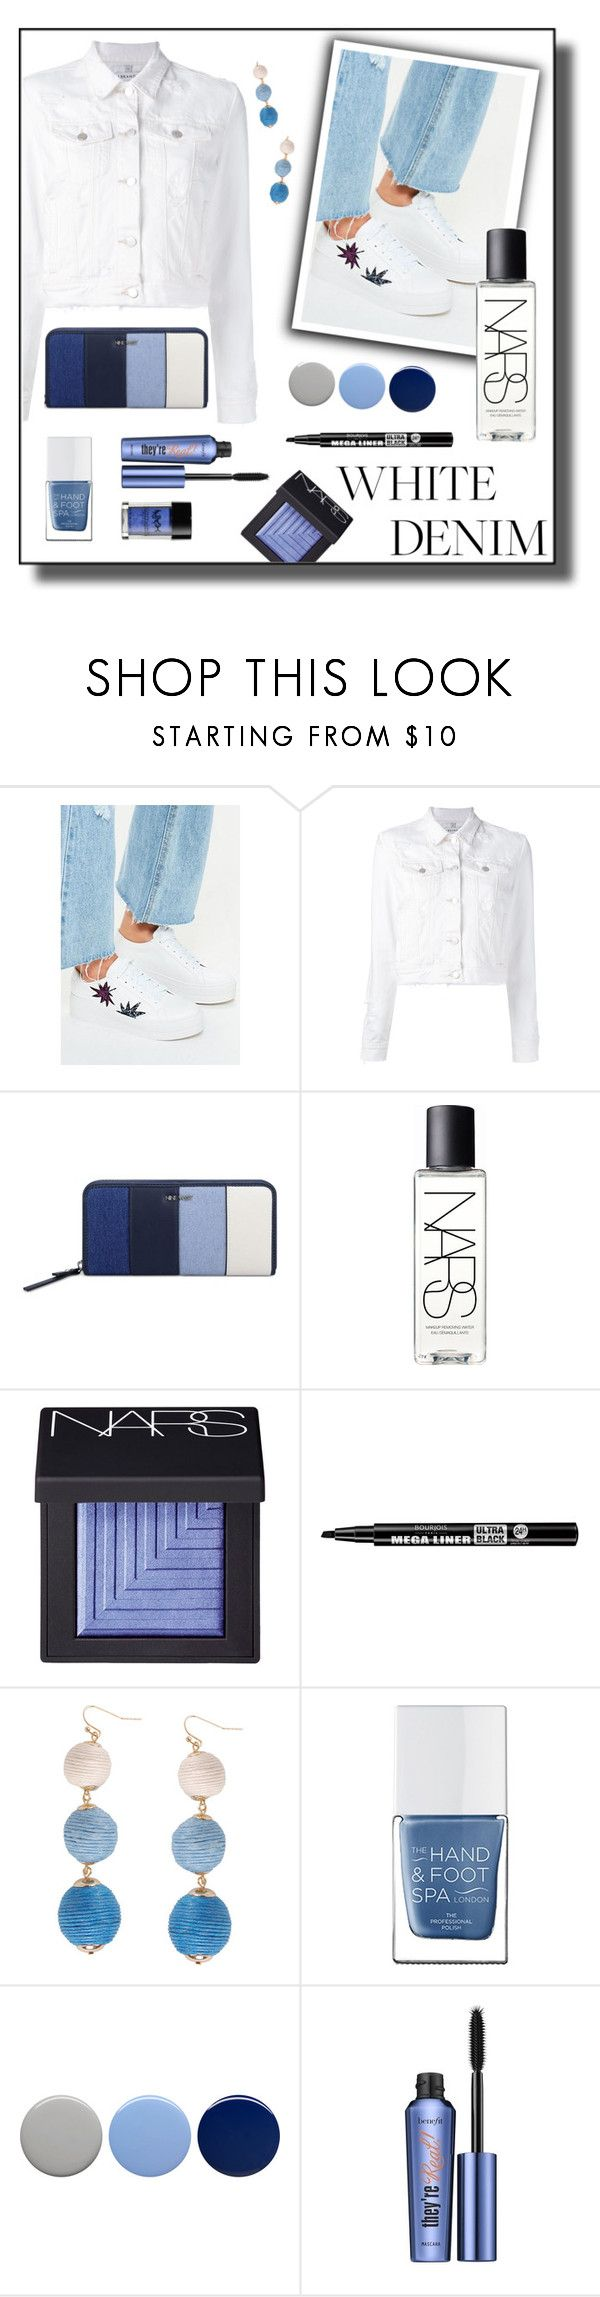 """White Denim"" by tomlin945 ❤ liked on Polyvore featuring Missguided, J Brand, Nine West, NARS Cosmetics, Bourjois, Humble Chic, The Hand & Foot Spa, Burberry, Benefit and NYX"